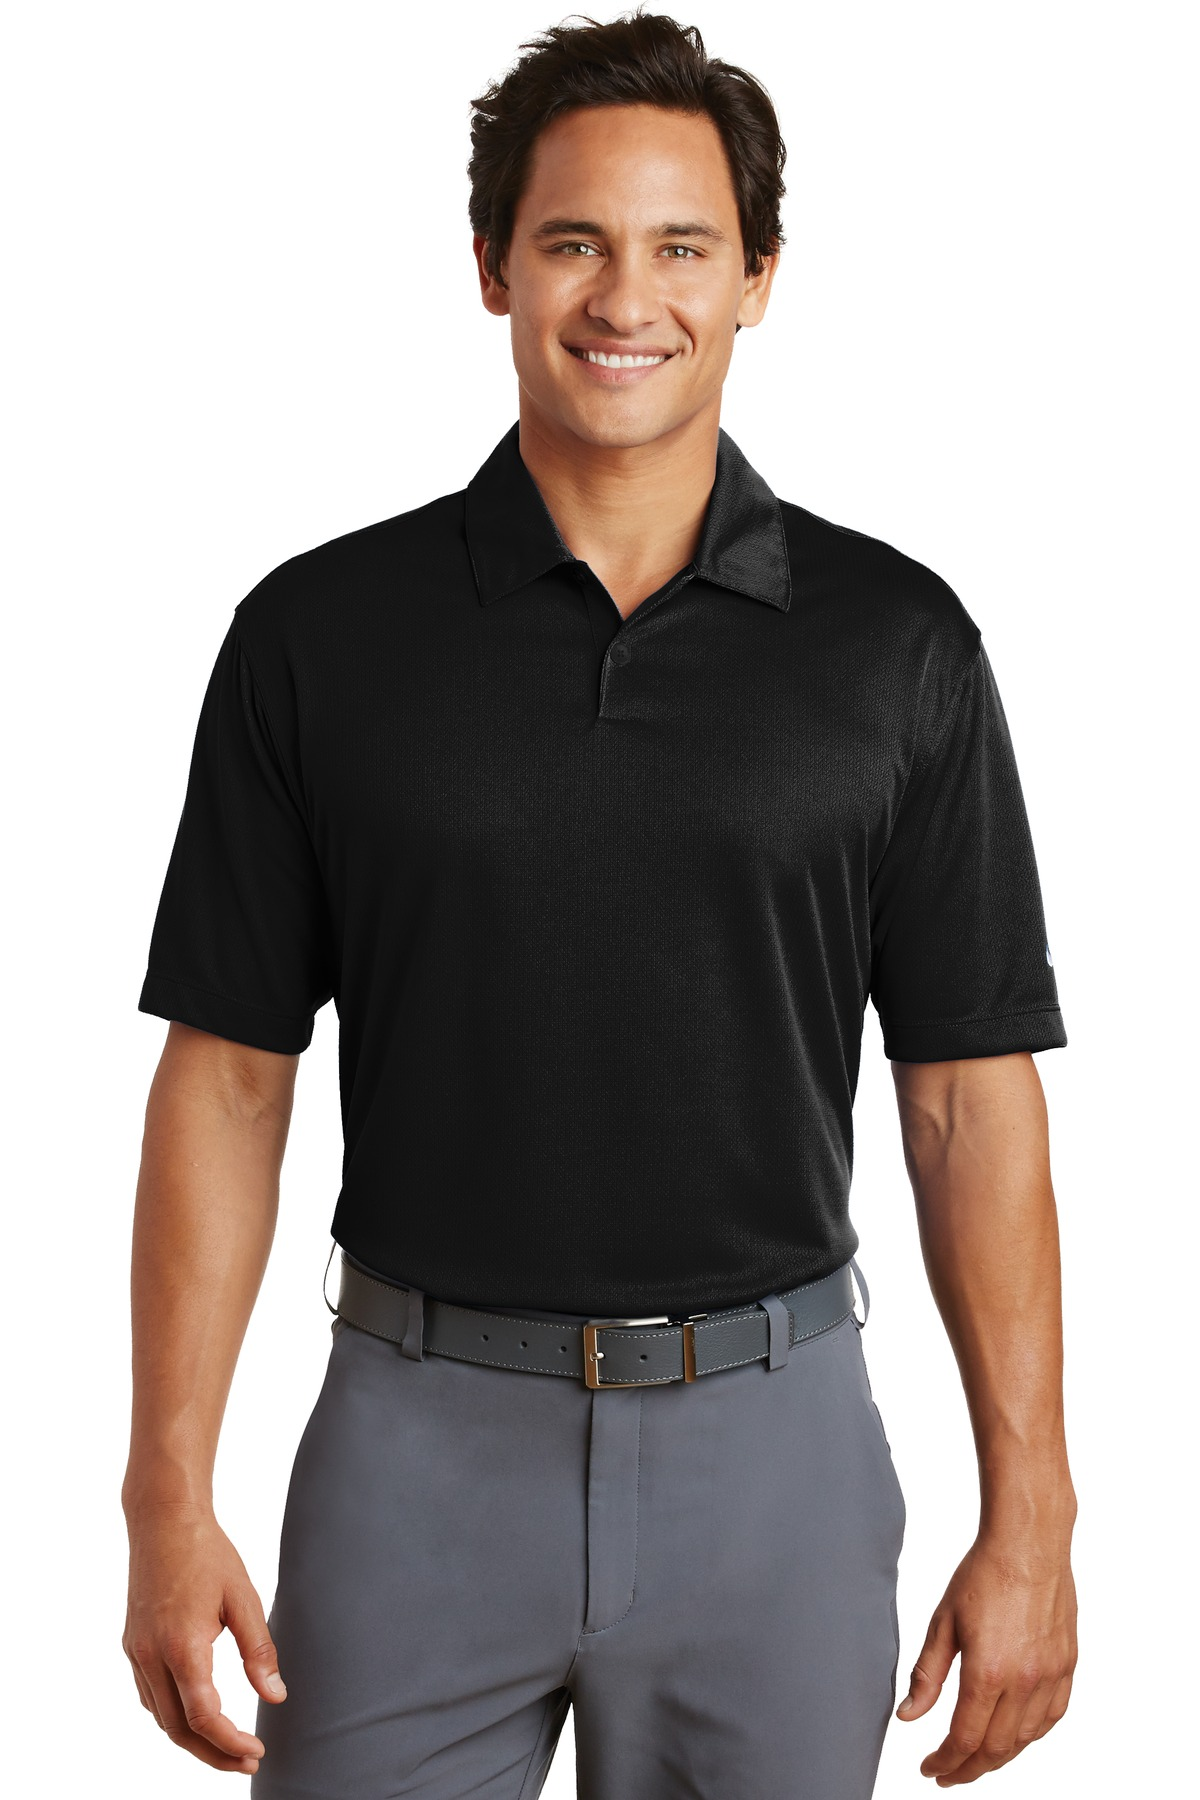 Nike Dri-FIT Pebble Texture Polo. 373749 - Black